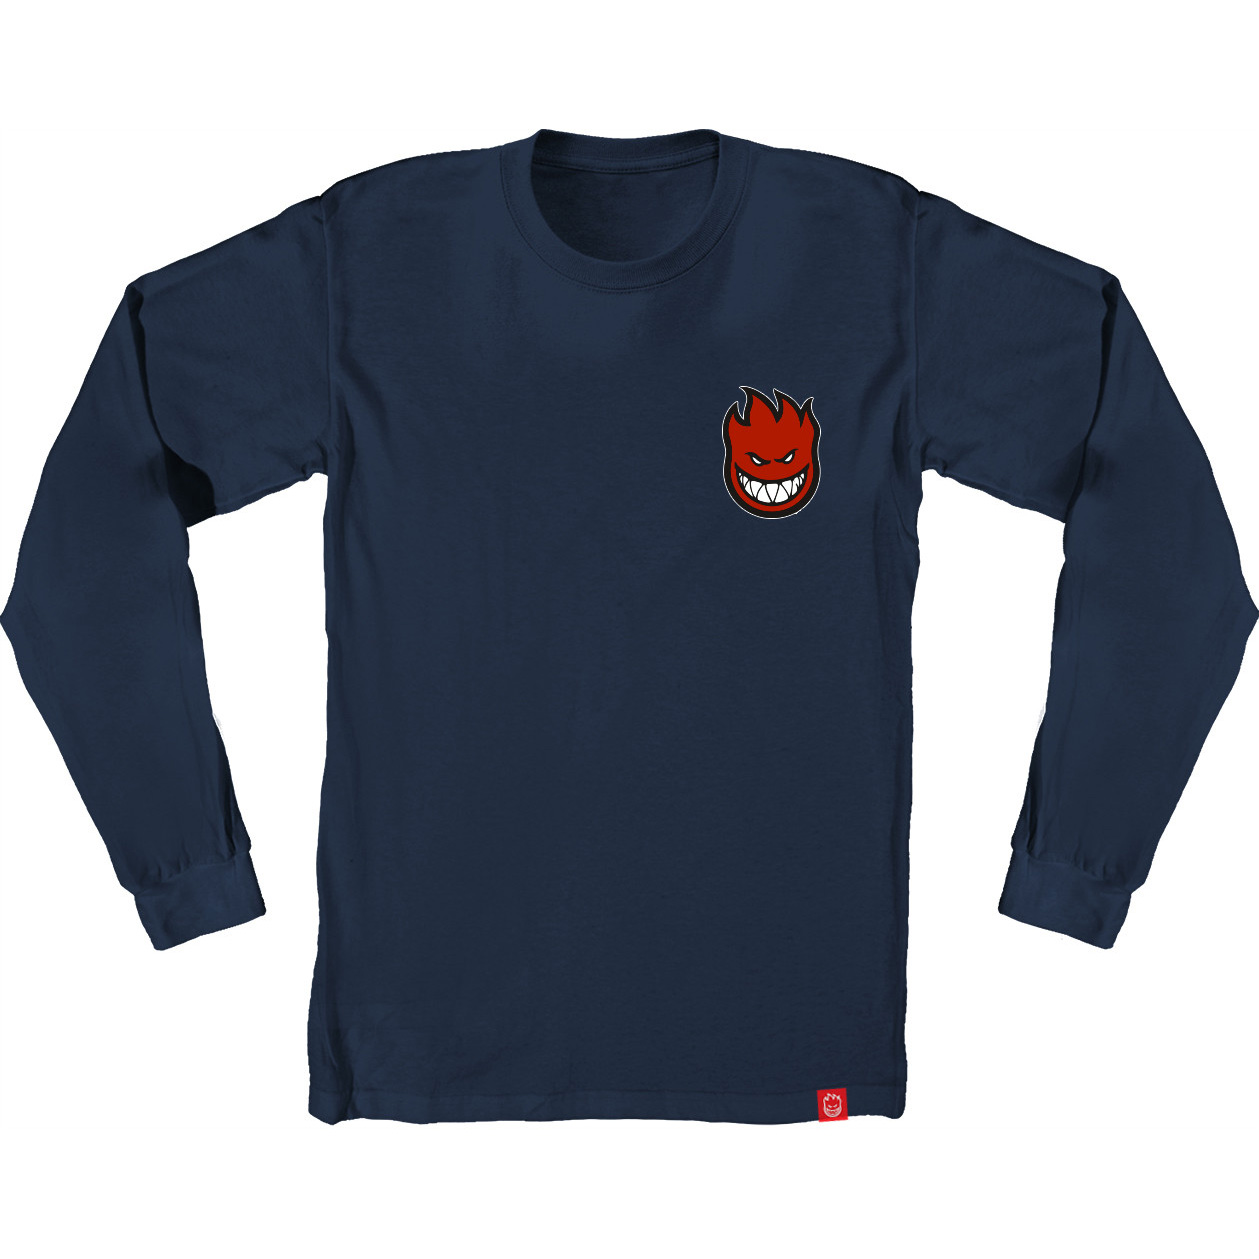 SF LS TEE LIL BIGHD FILL NVY S - Click to enlarge